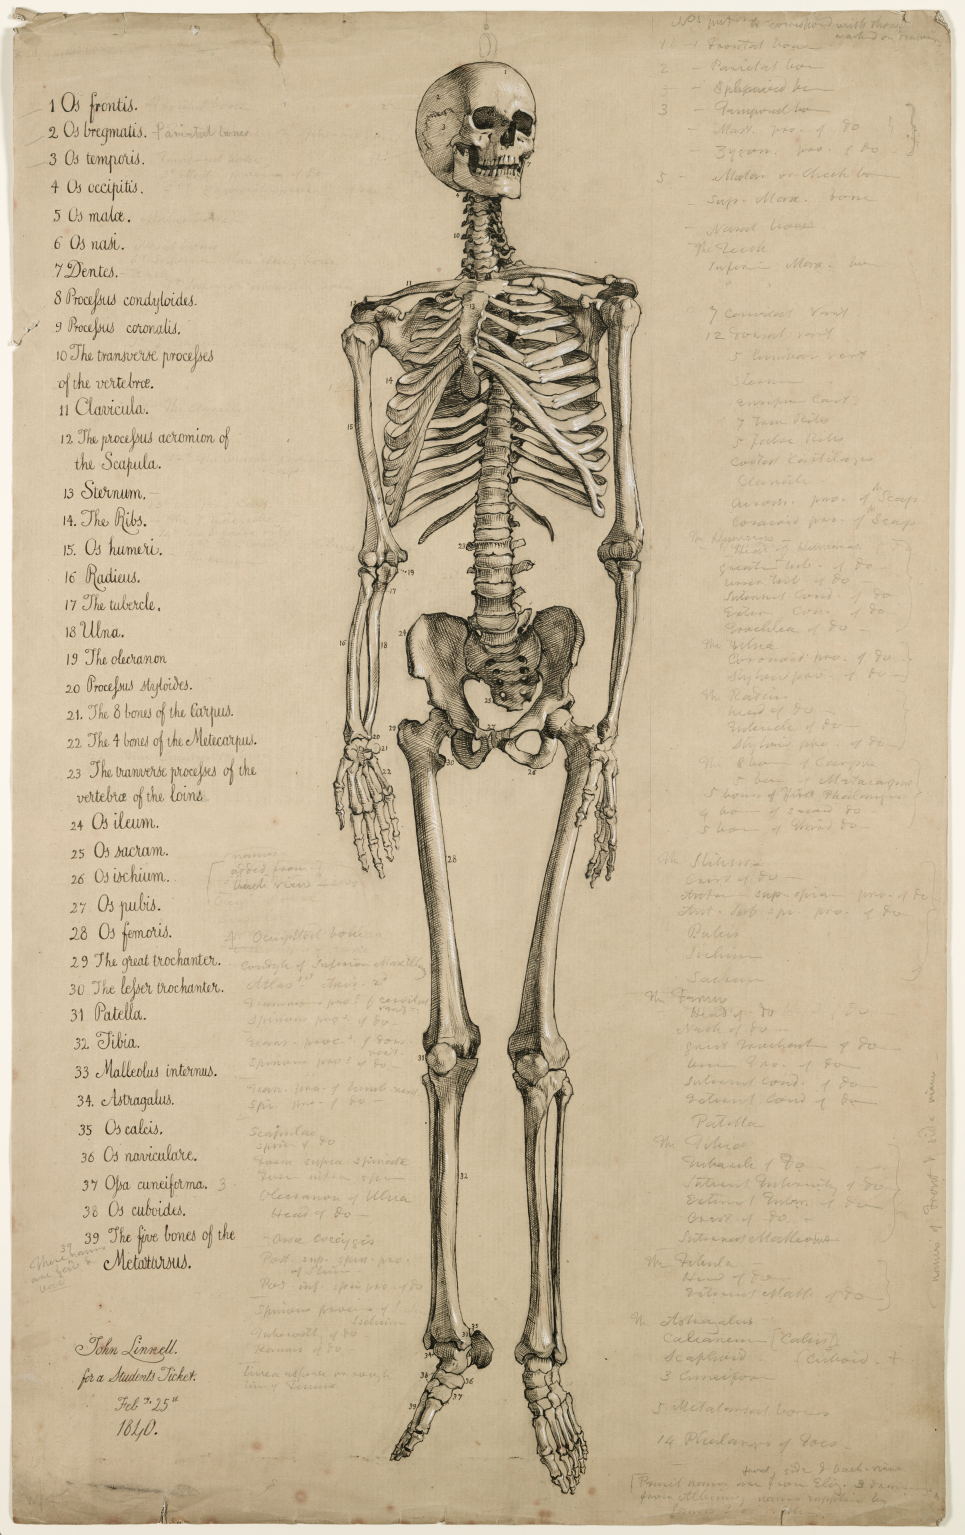 Anatomical Drawing Of A Human Skeleton England 1840 Attributed To